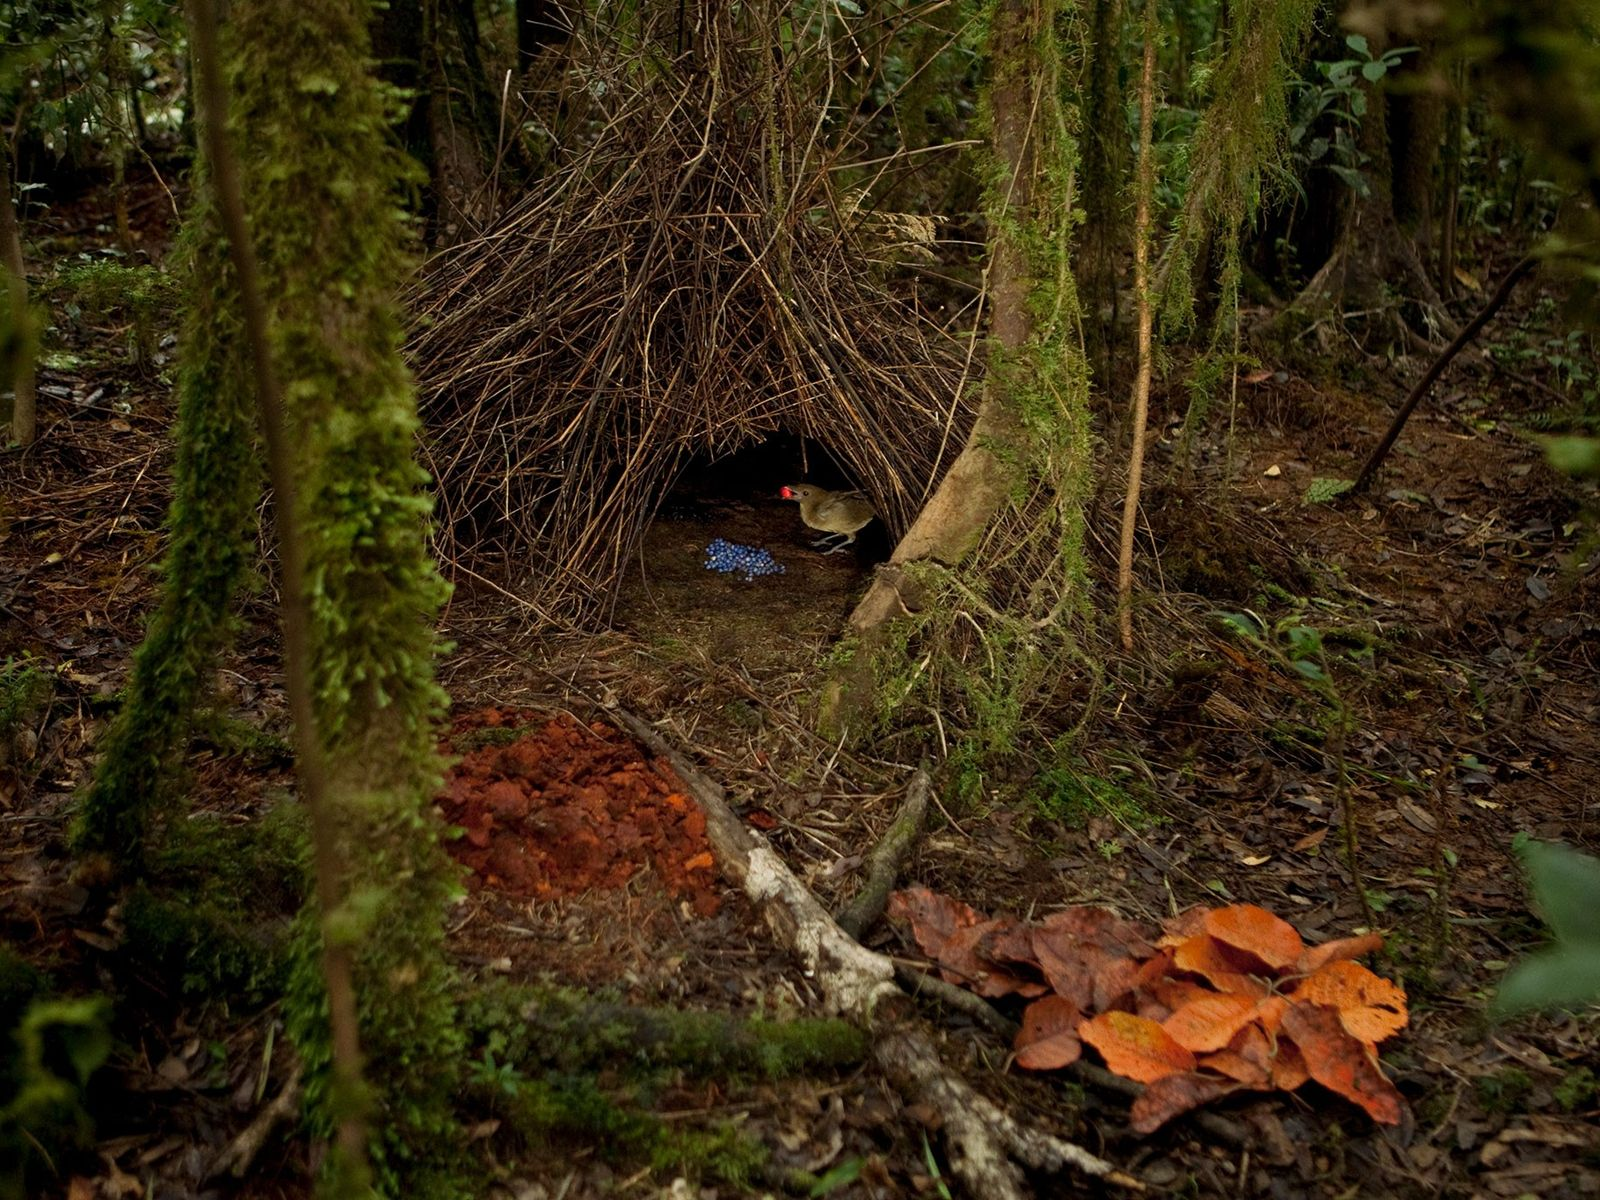 A male Vogelkof bowerbird stands in his bower entrance, holding an orange fruit he has just ...